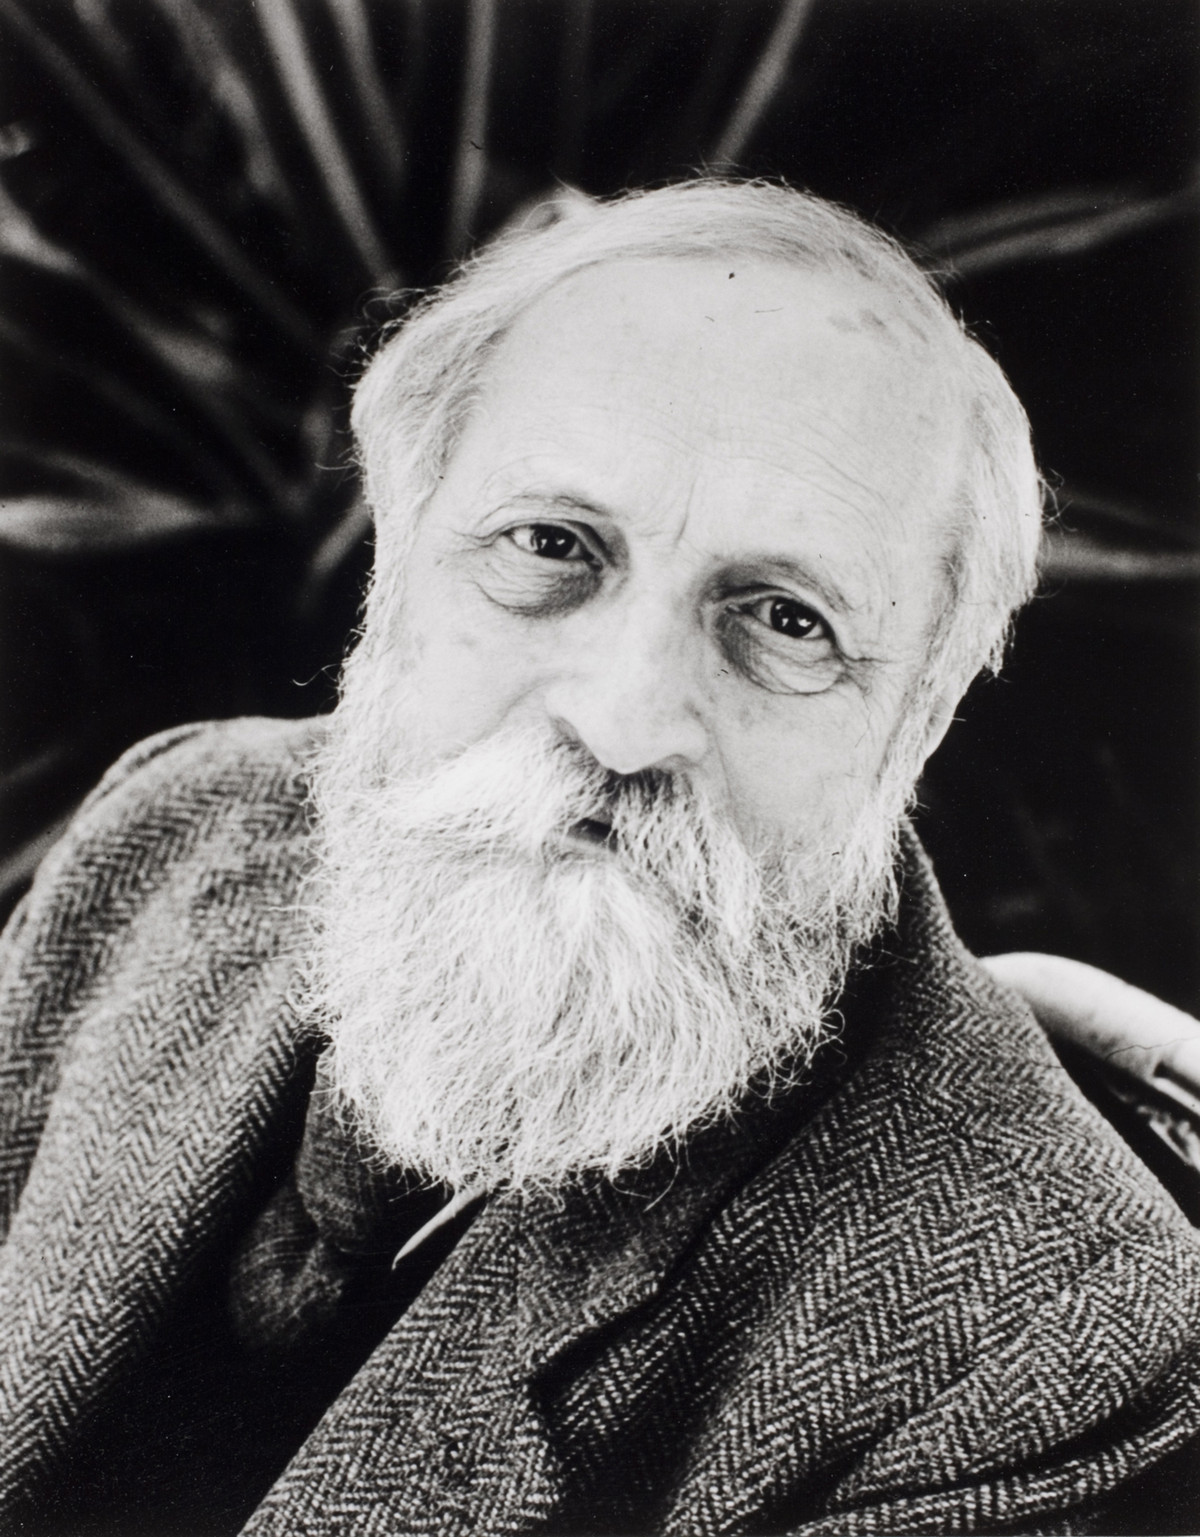 Martin Buber is a Jewish existential philosopher and theorist of Zionism. Jerusalem, Israel, 1953.